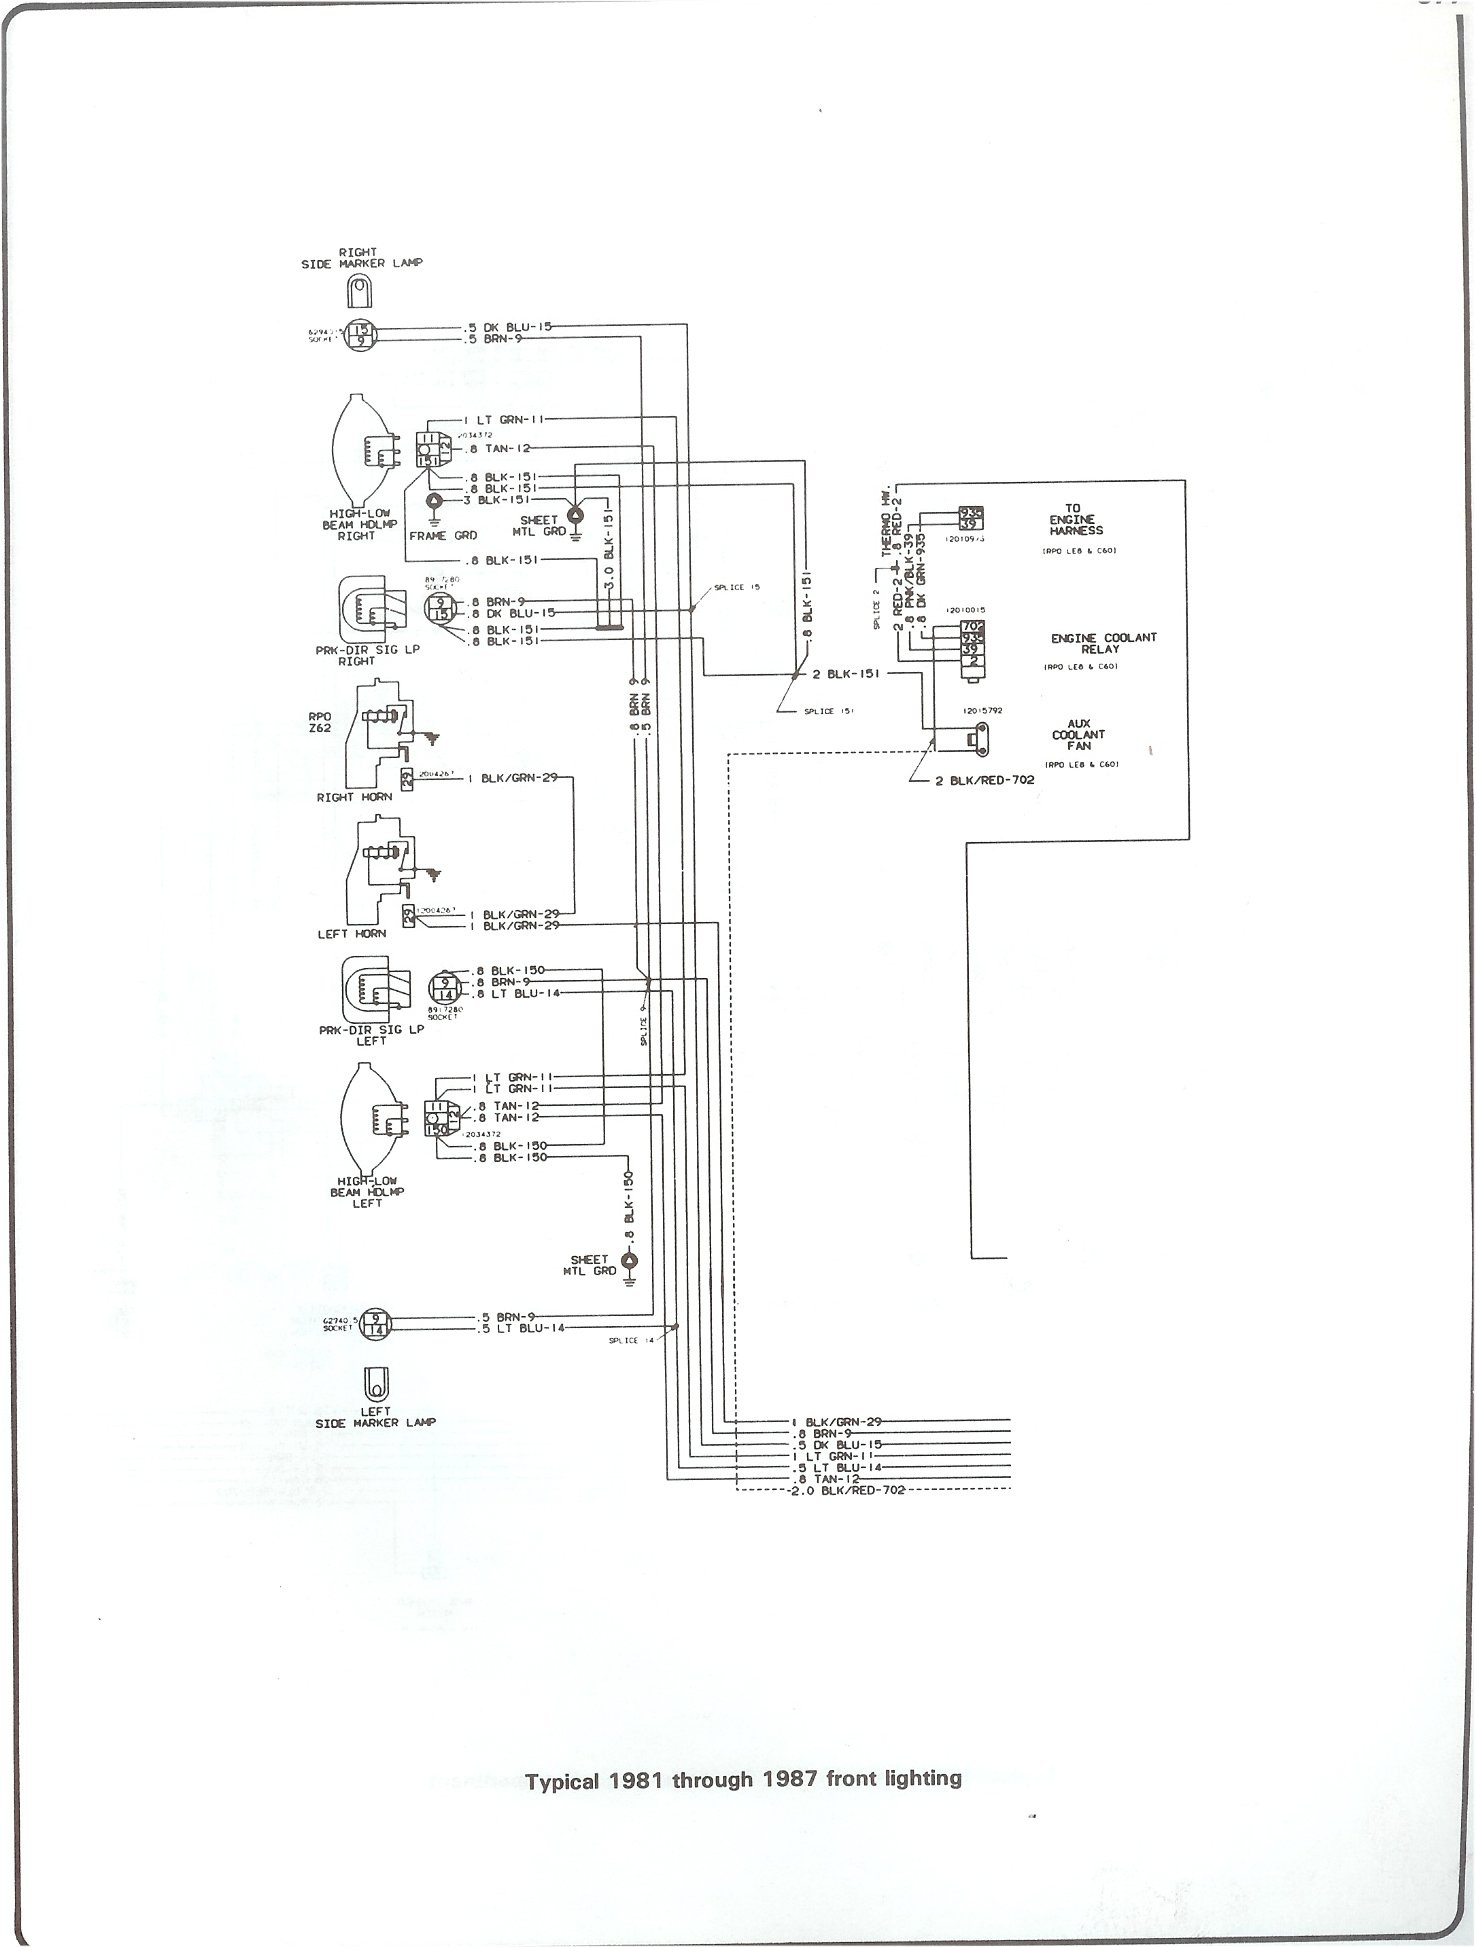 Brake Light Switch Wiring Diagram? - Blazer Forum - Chevy Blazer Forums - Brake Lights Wiring Diagram